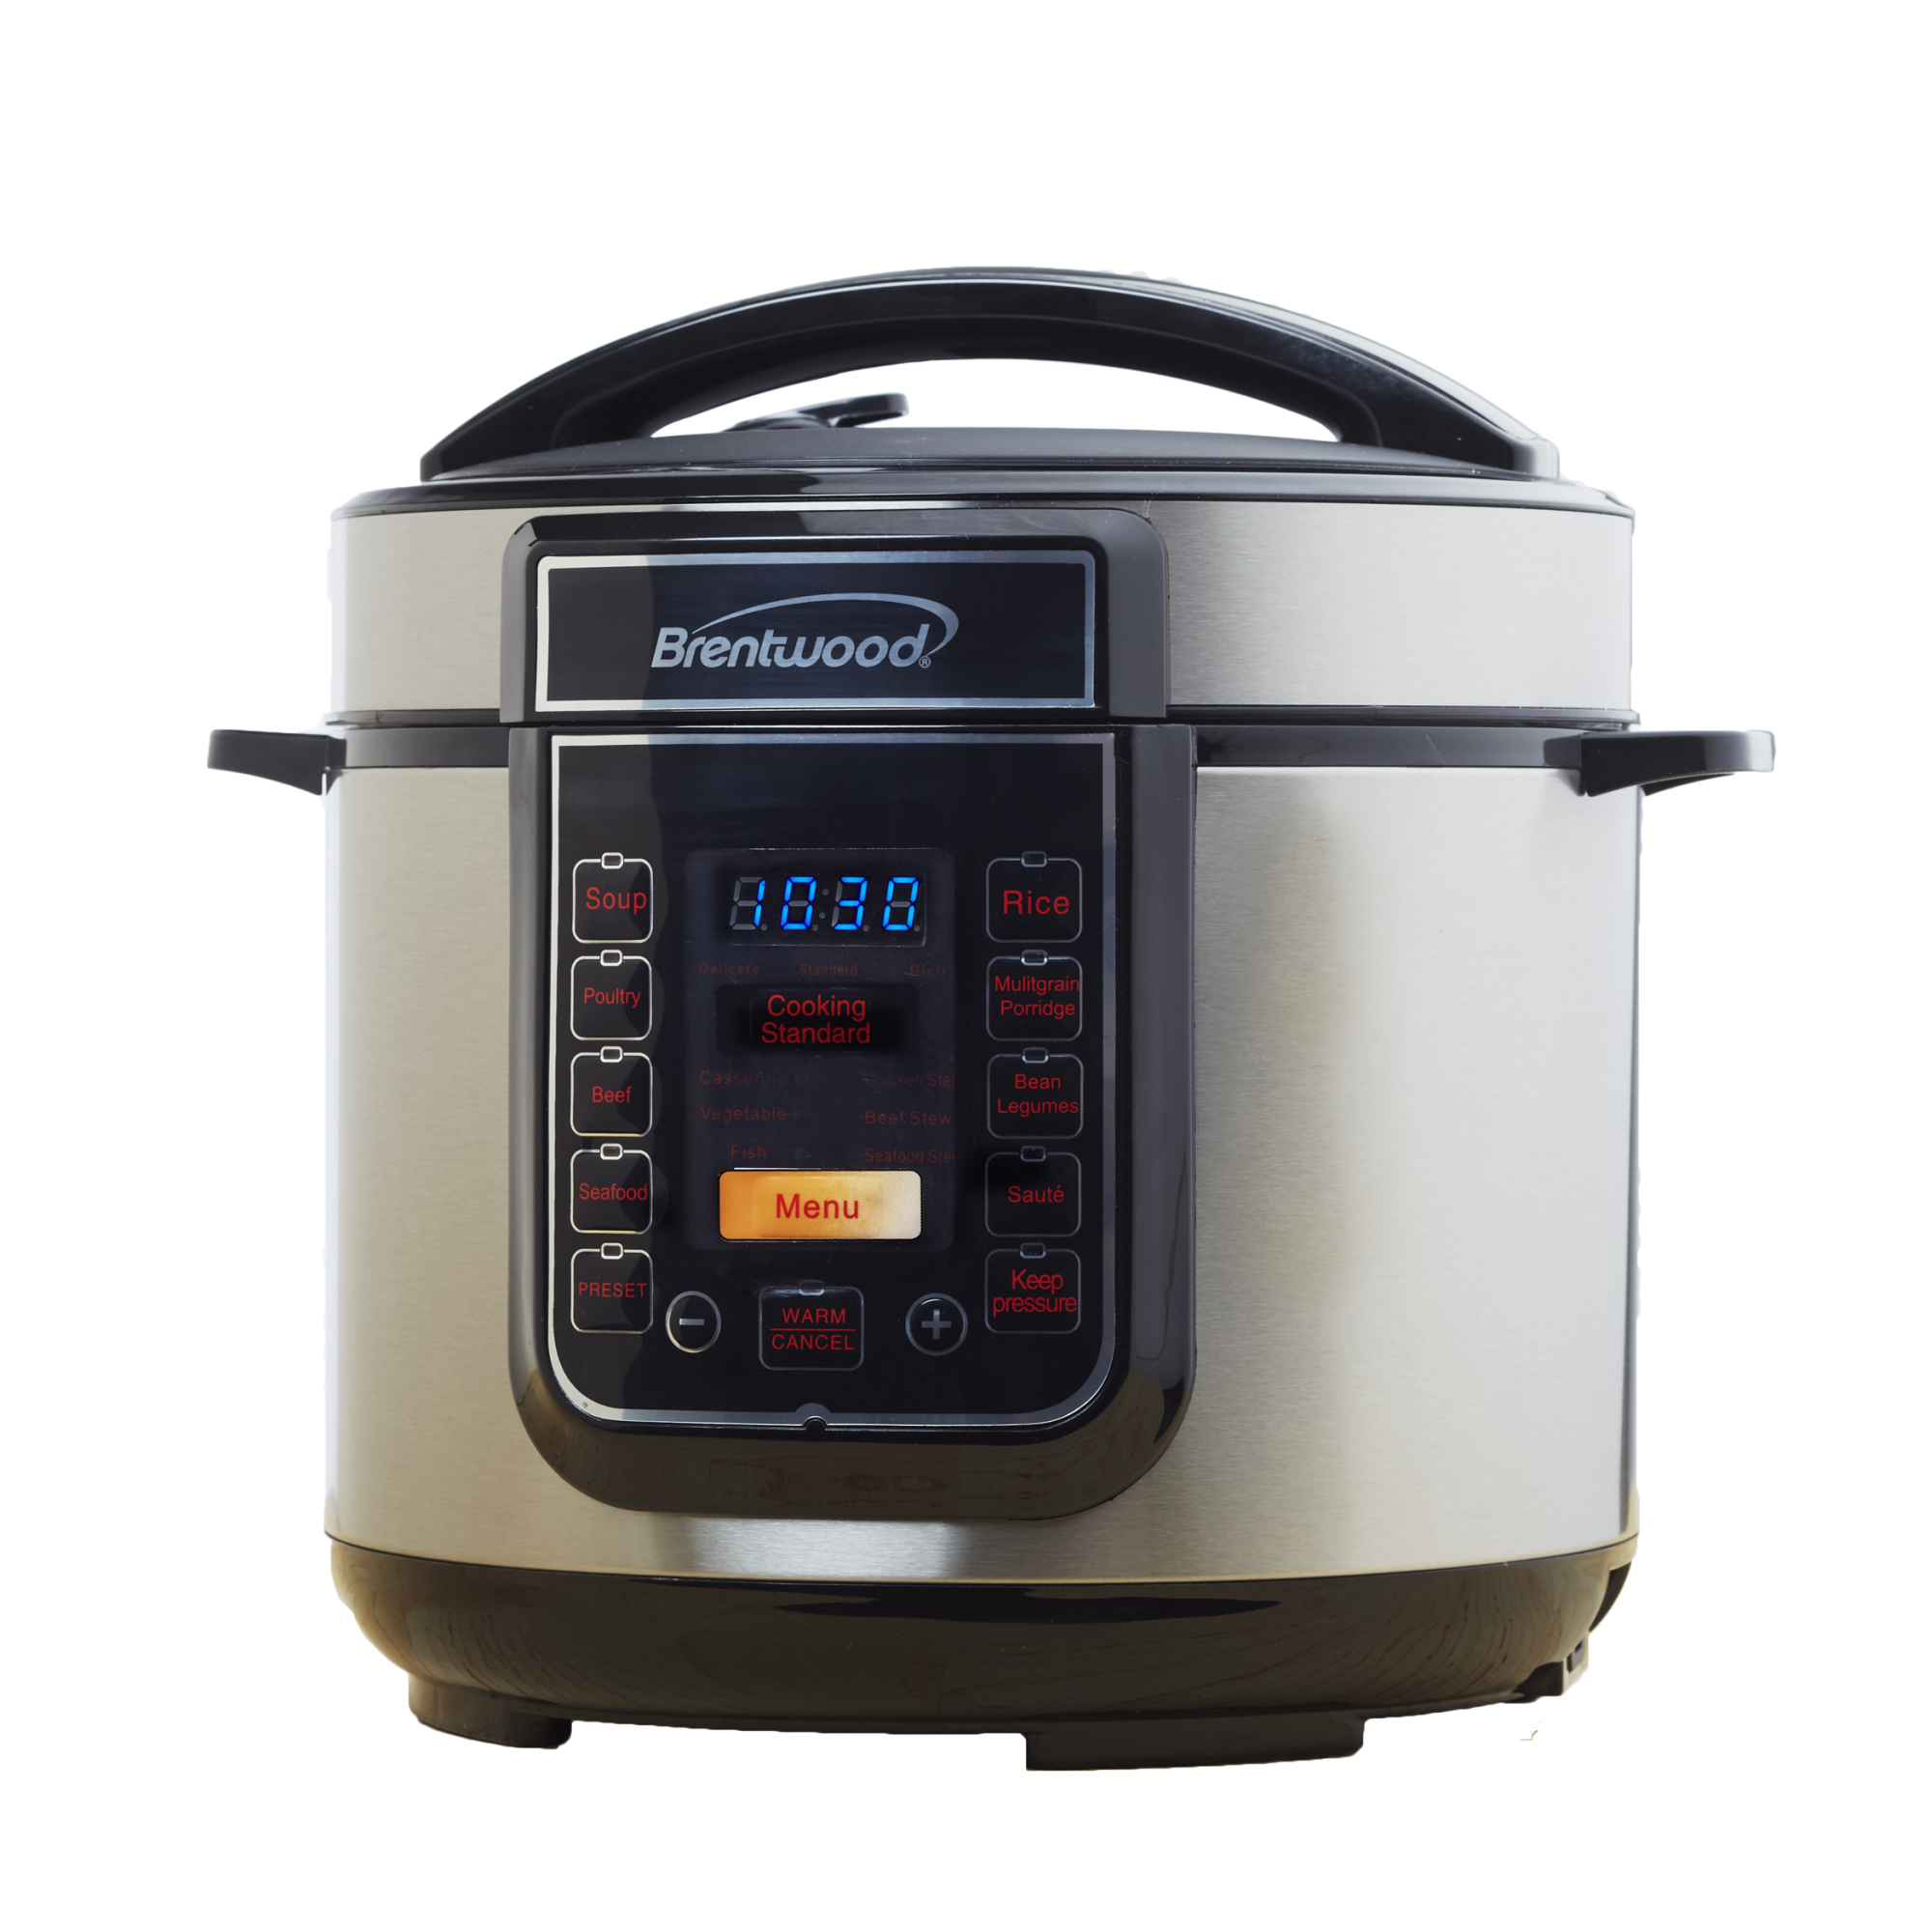 Brentwood 5 Quart Electric Pressure and Slow Cooker